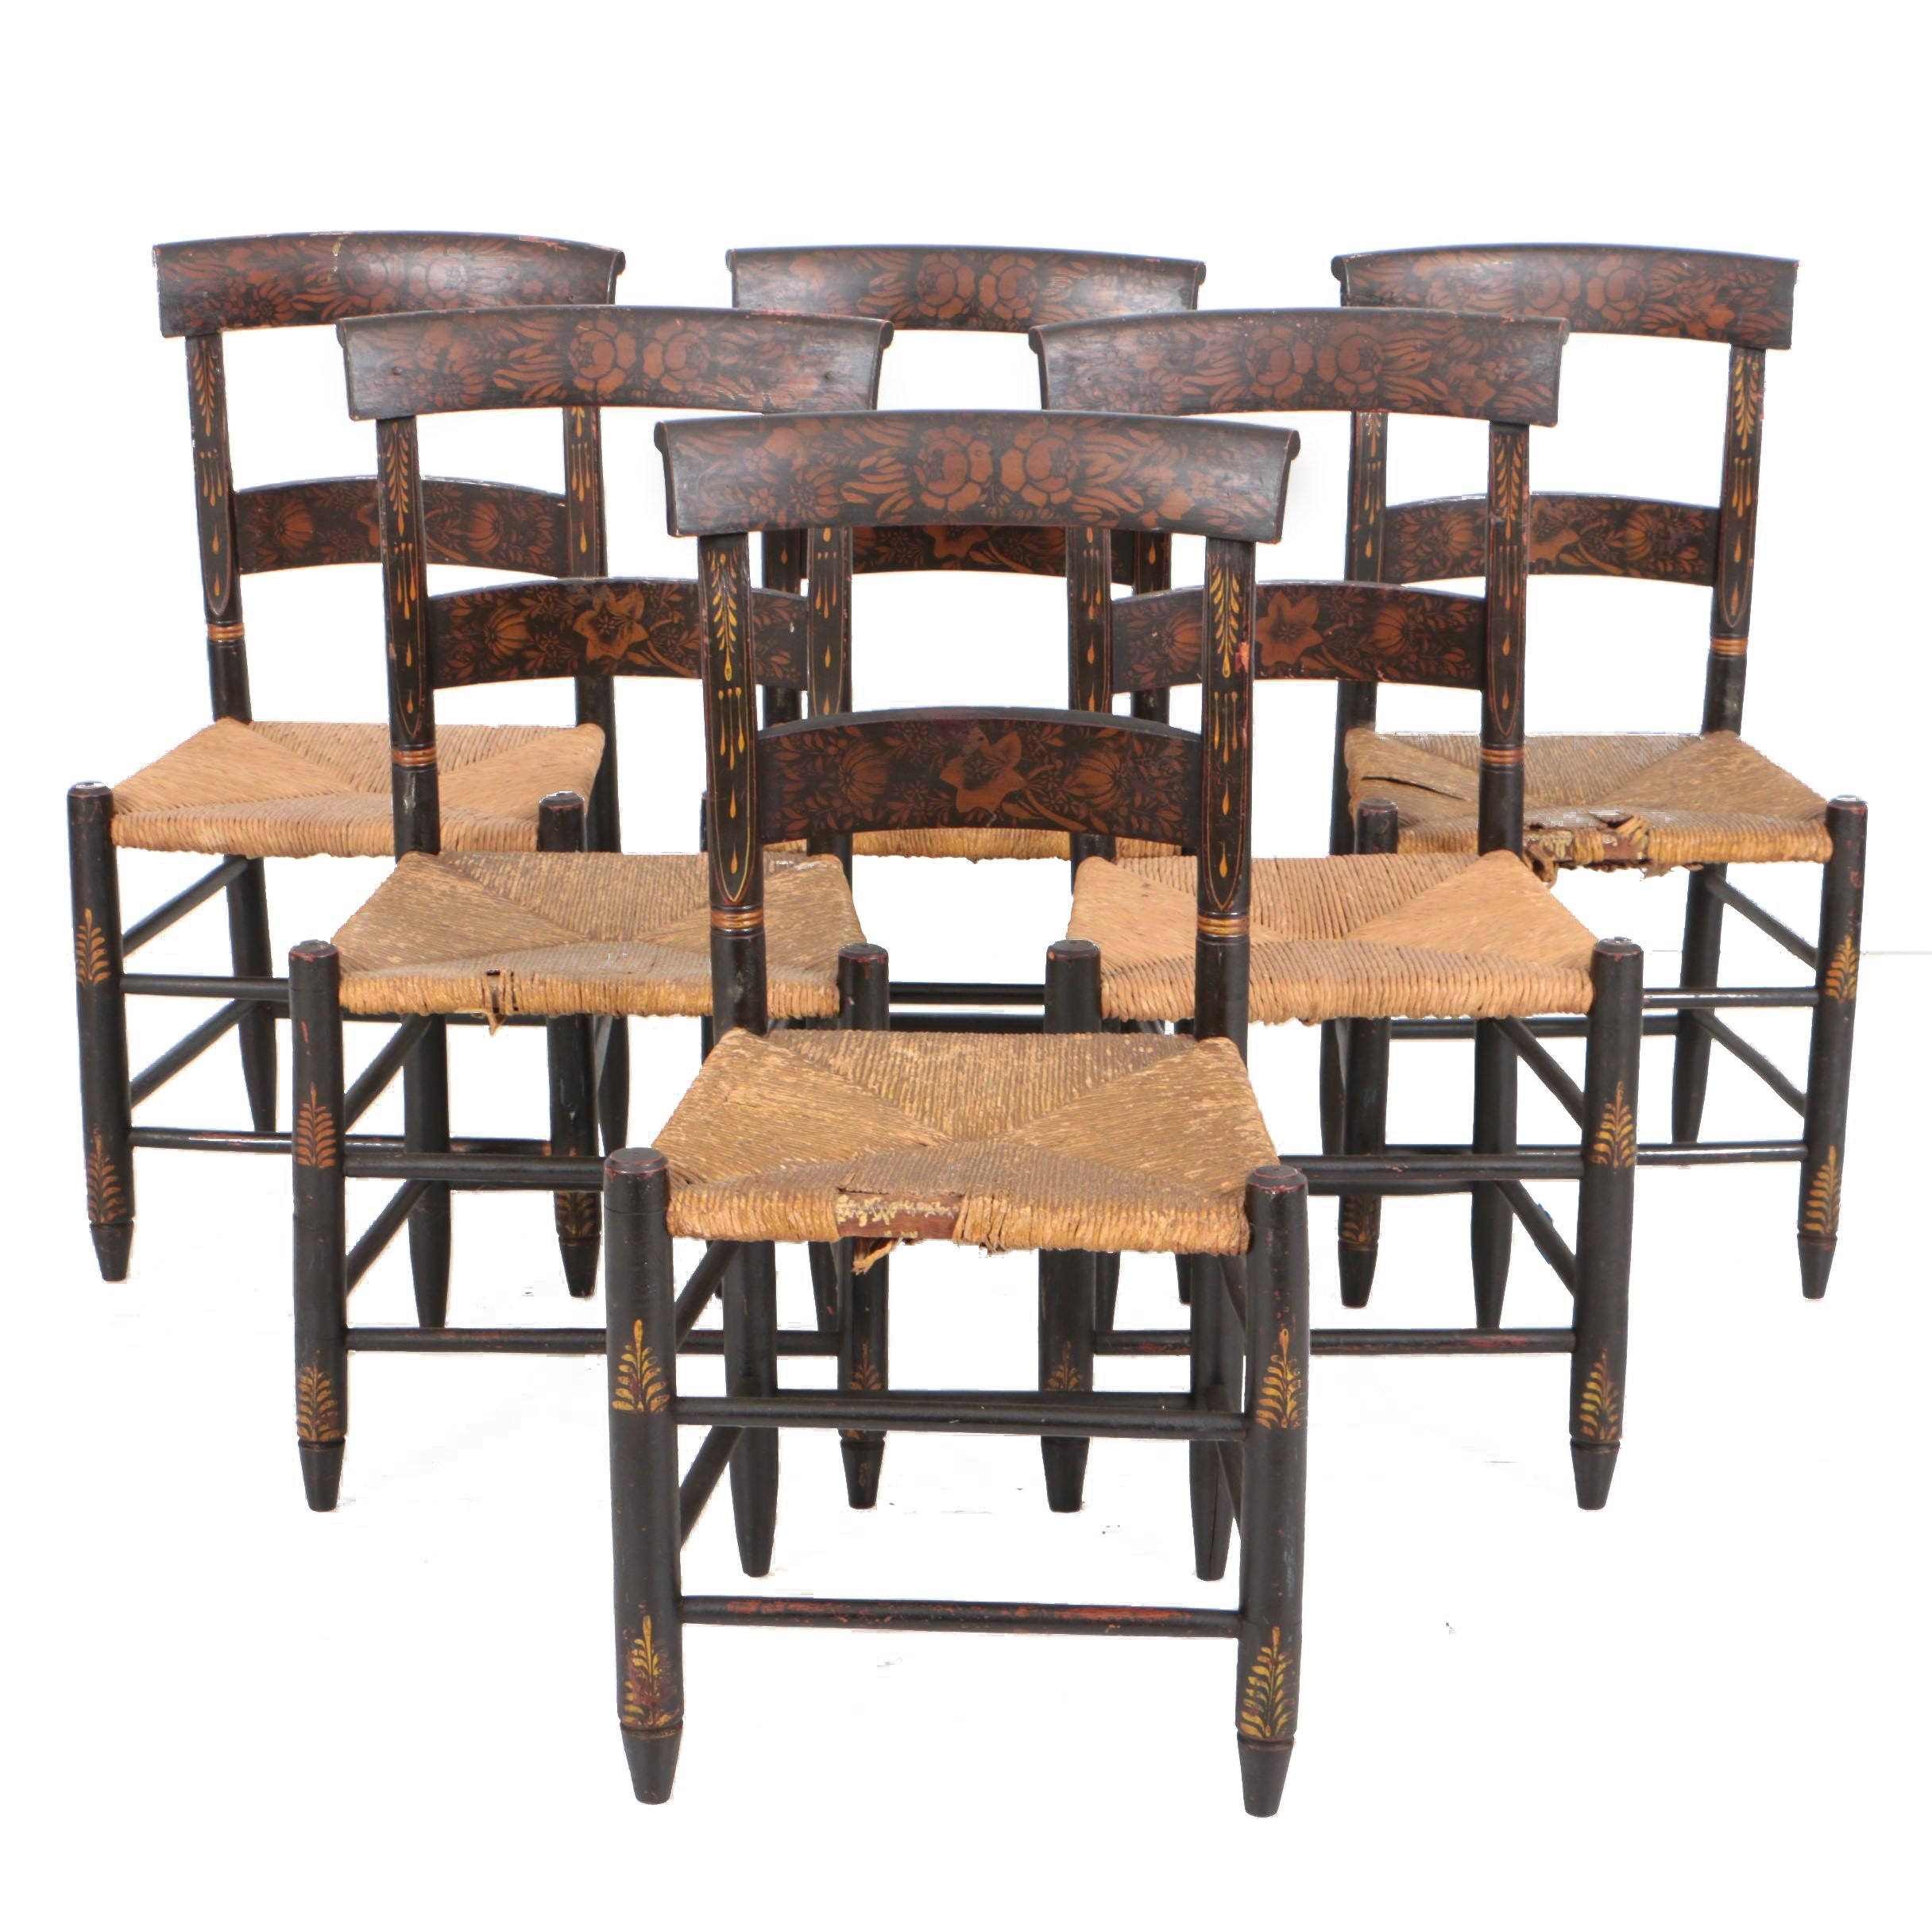 Hitchcock Style Painted and Stenciled Wood Side Chairs with Rush Seats, 19th C.